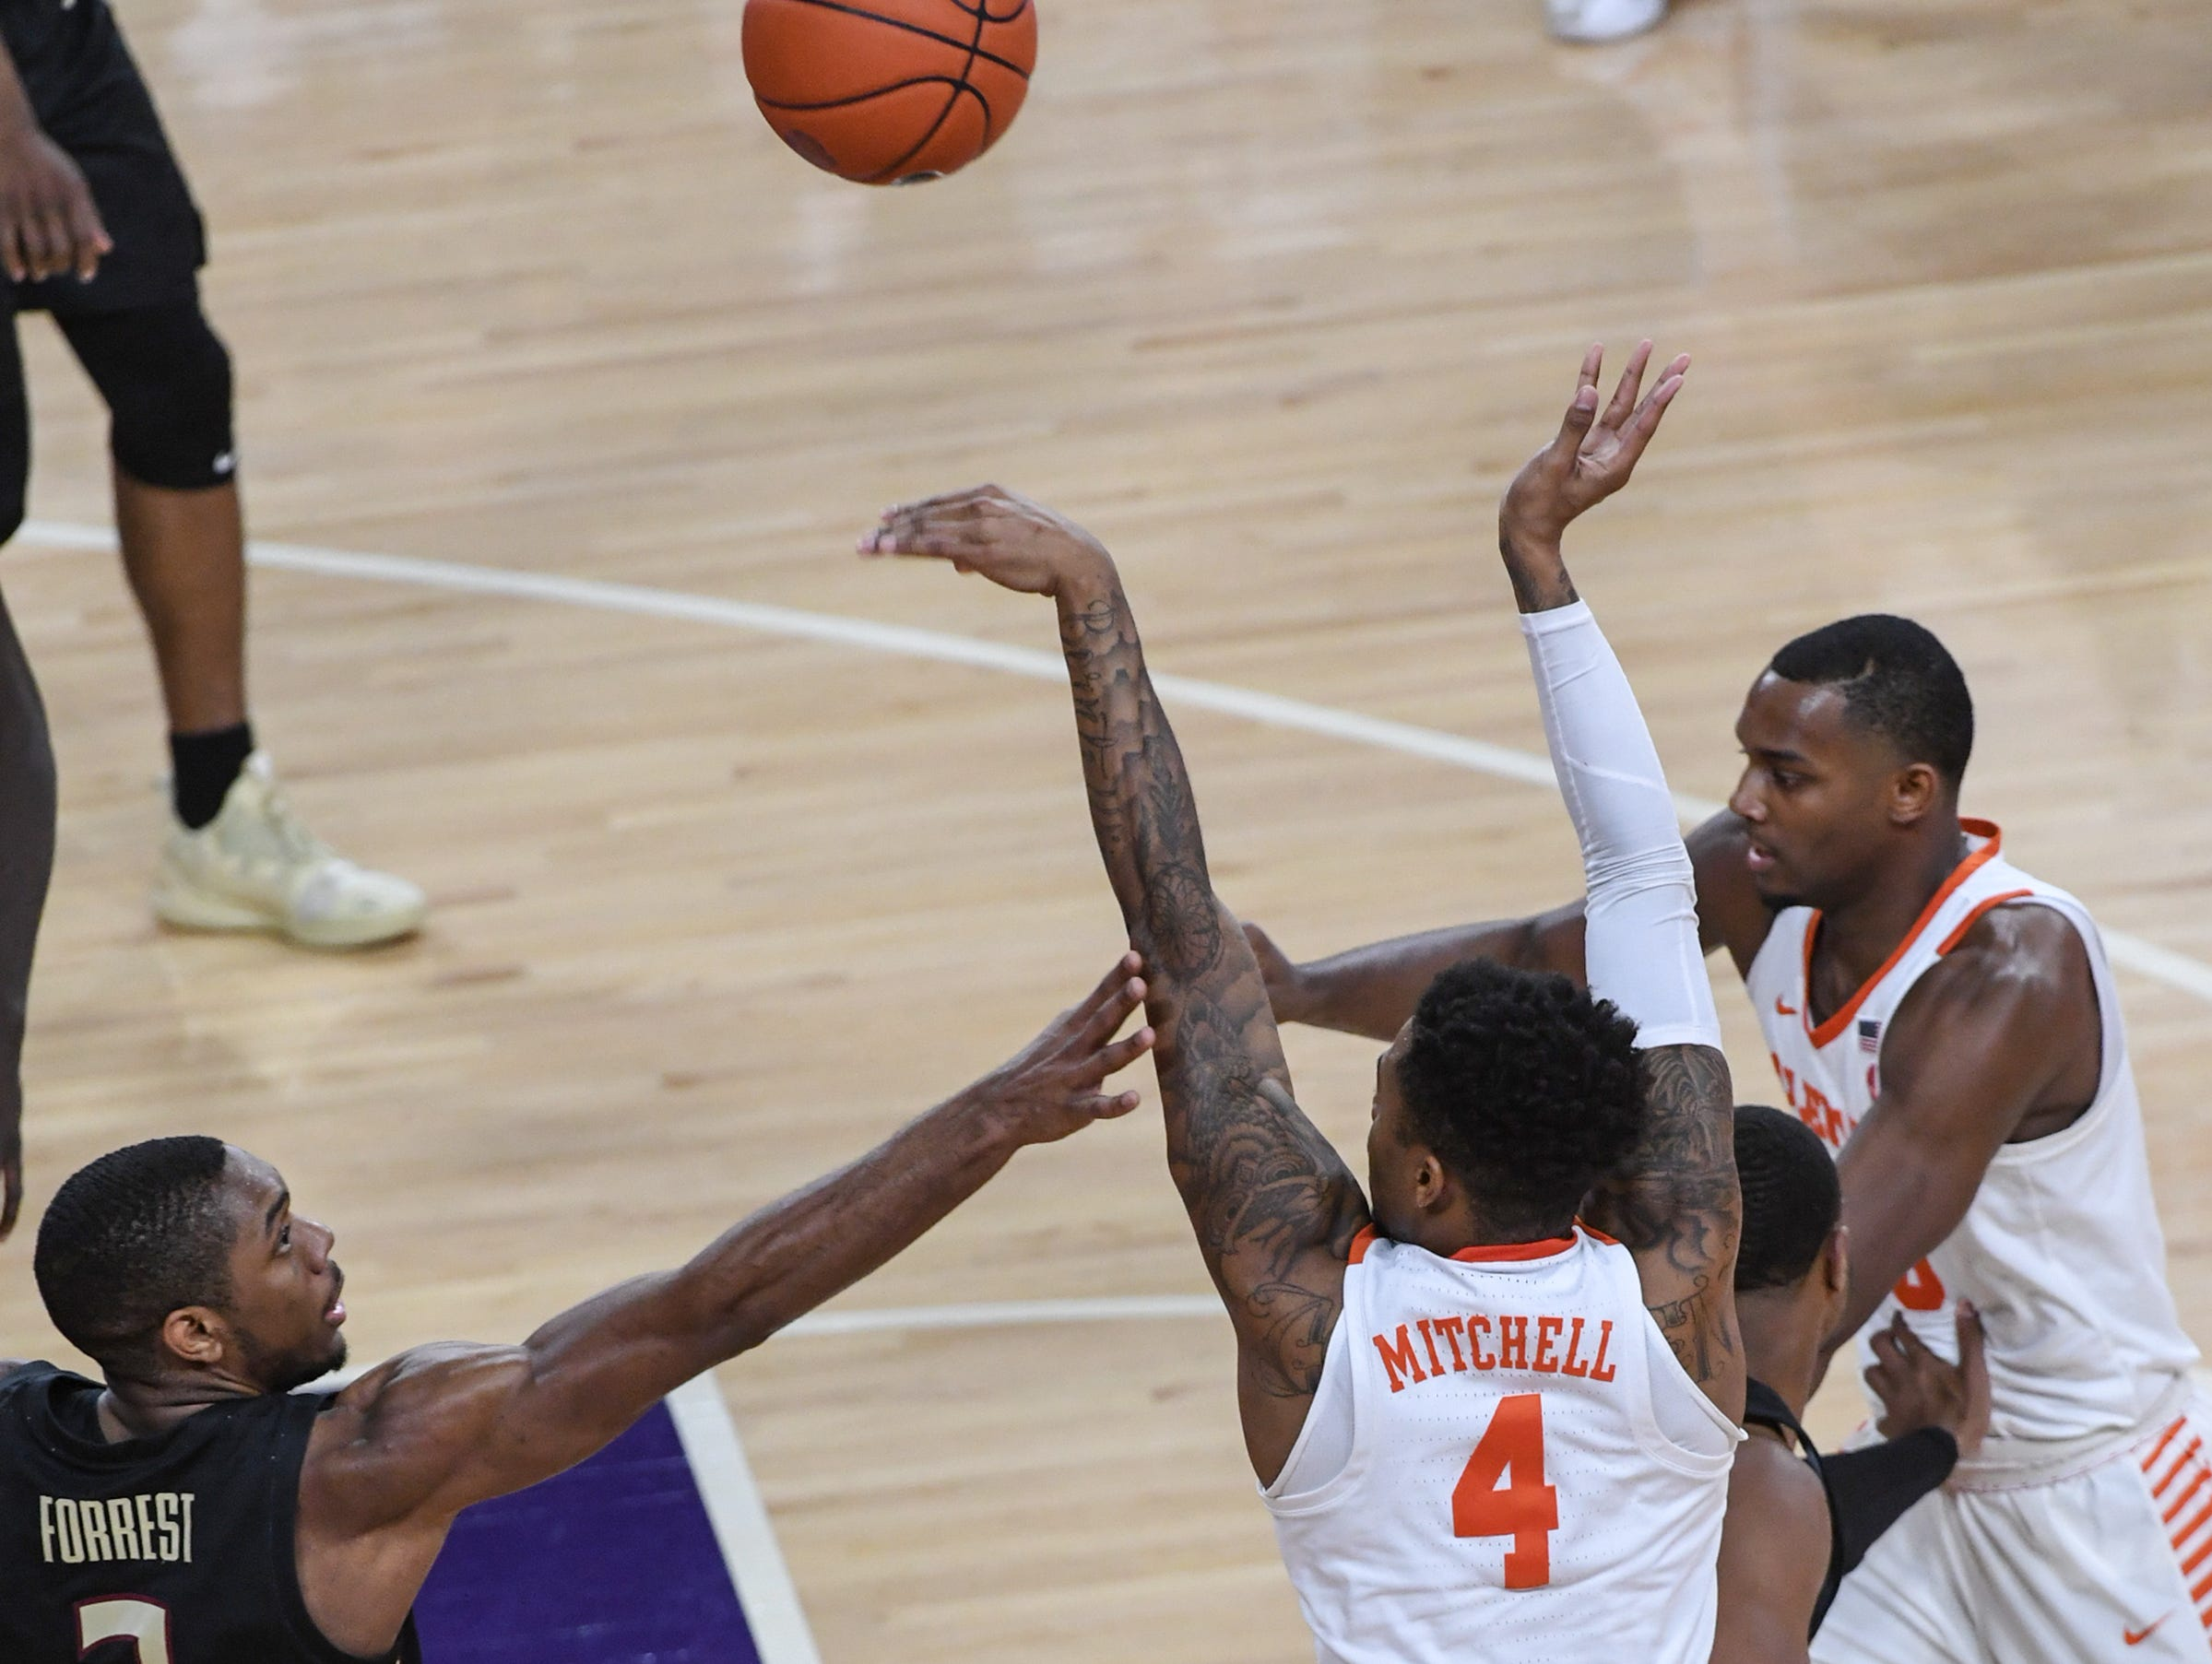 Clemson guard Shelton Mitchell (4) shoots near Florida State guard Trent Forrest(3) during the first half at Littlejohn Coliseum in Clemson Tuesday, February 19, 2019.